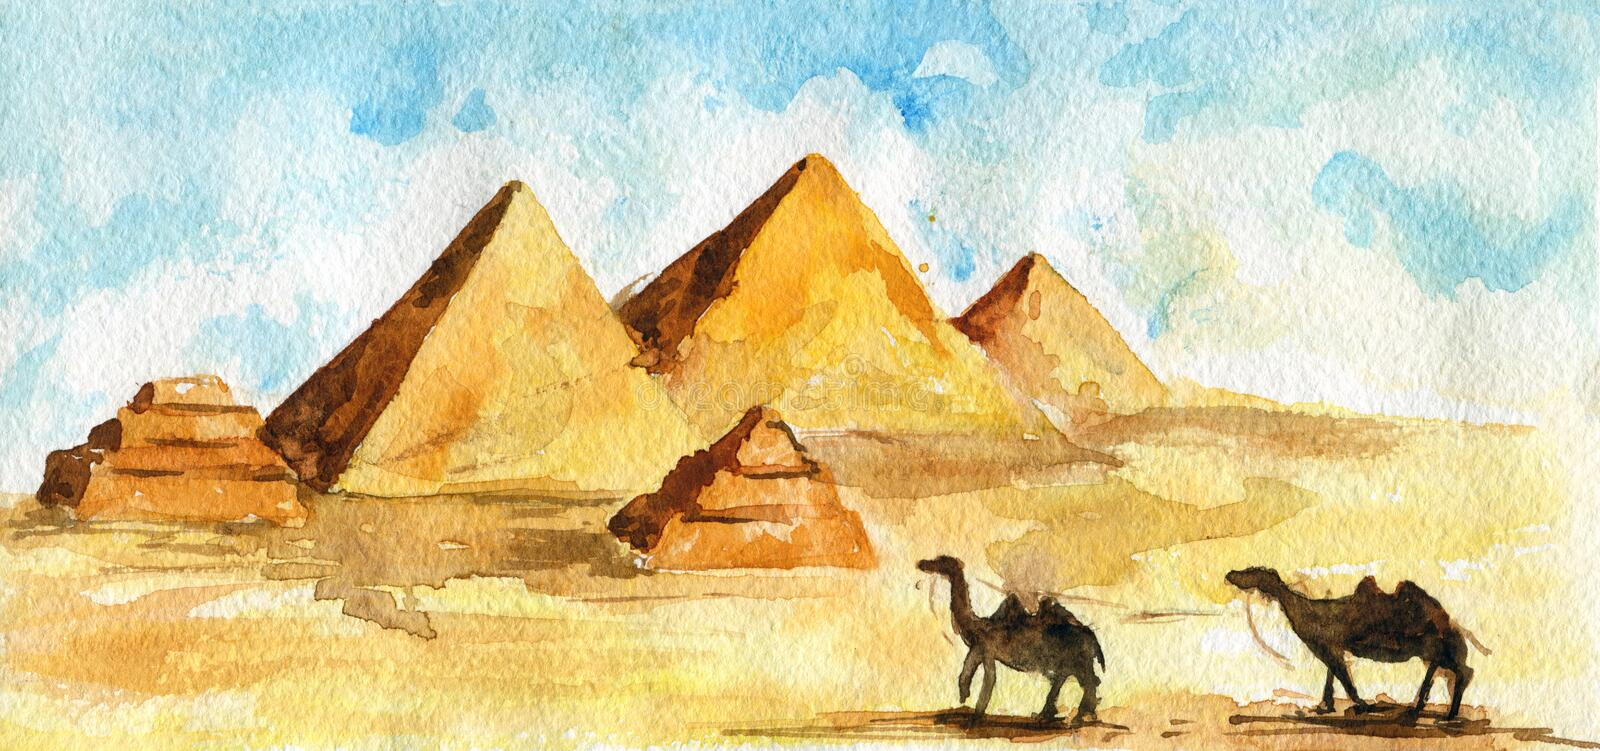 Egyptian pyramids in desert, two camels walking. Watercolor sketch. royalty free illustration